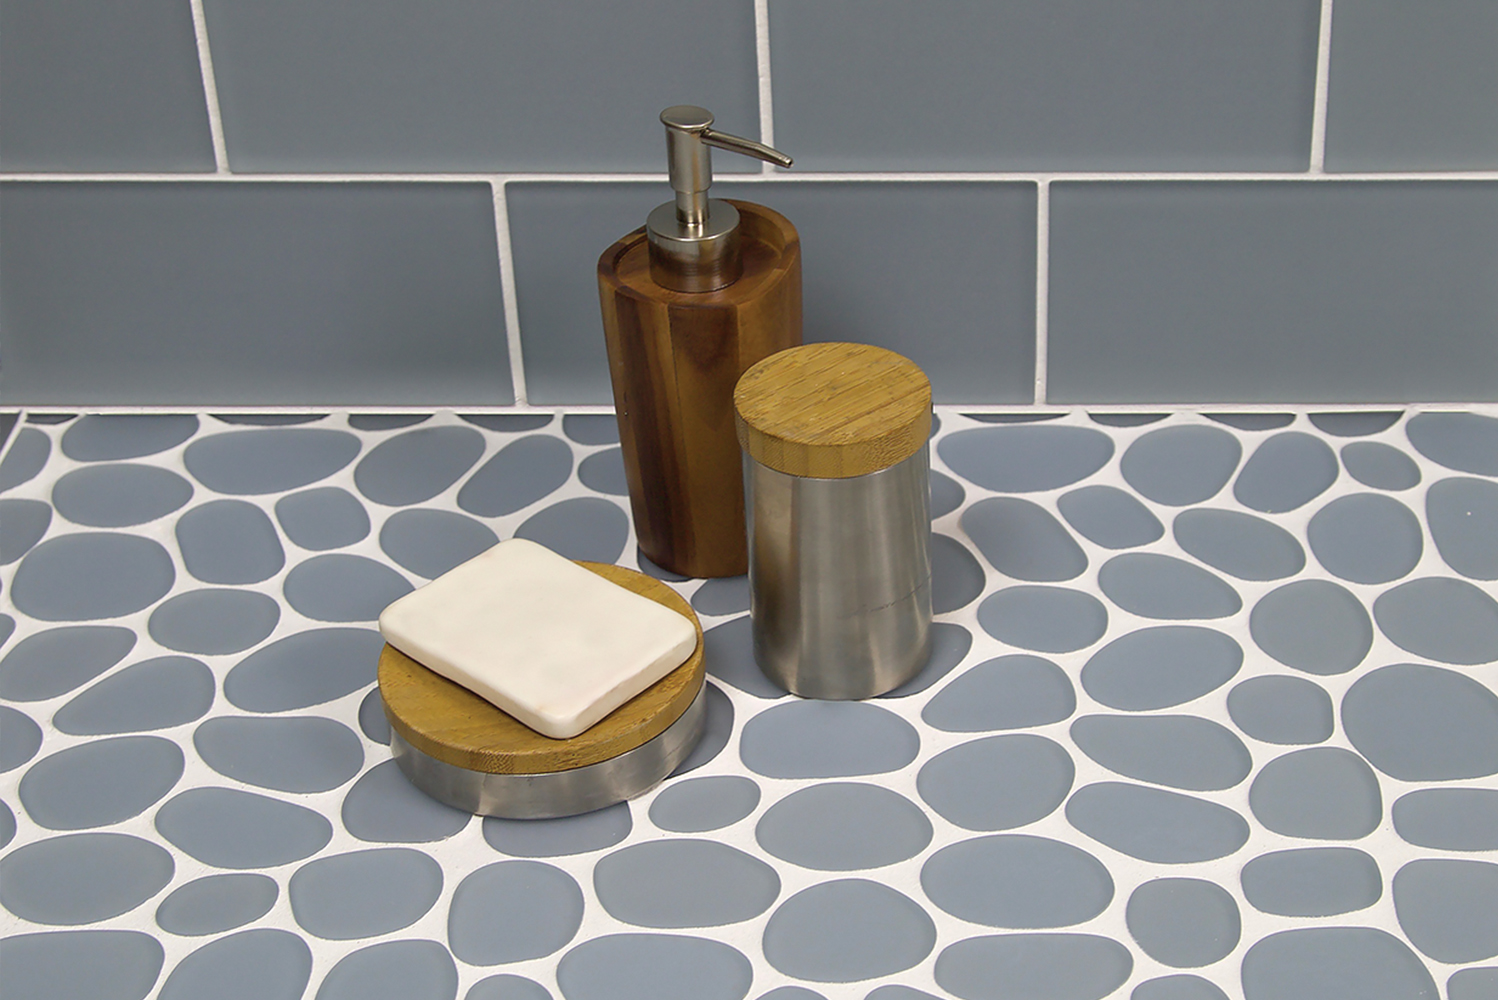 The tiles combine the comfort of a flat, matte mosaic with the shapes and organic style of stone pebbles.